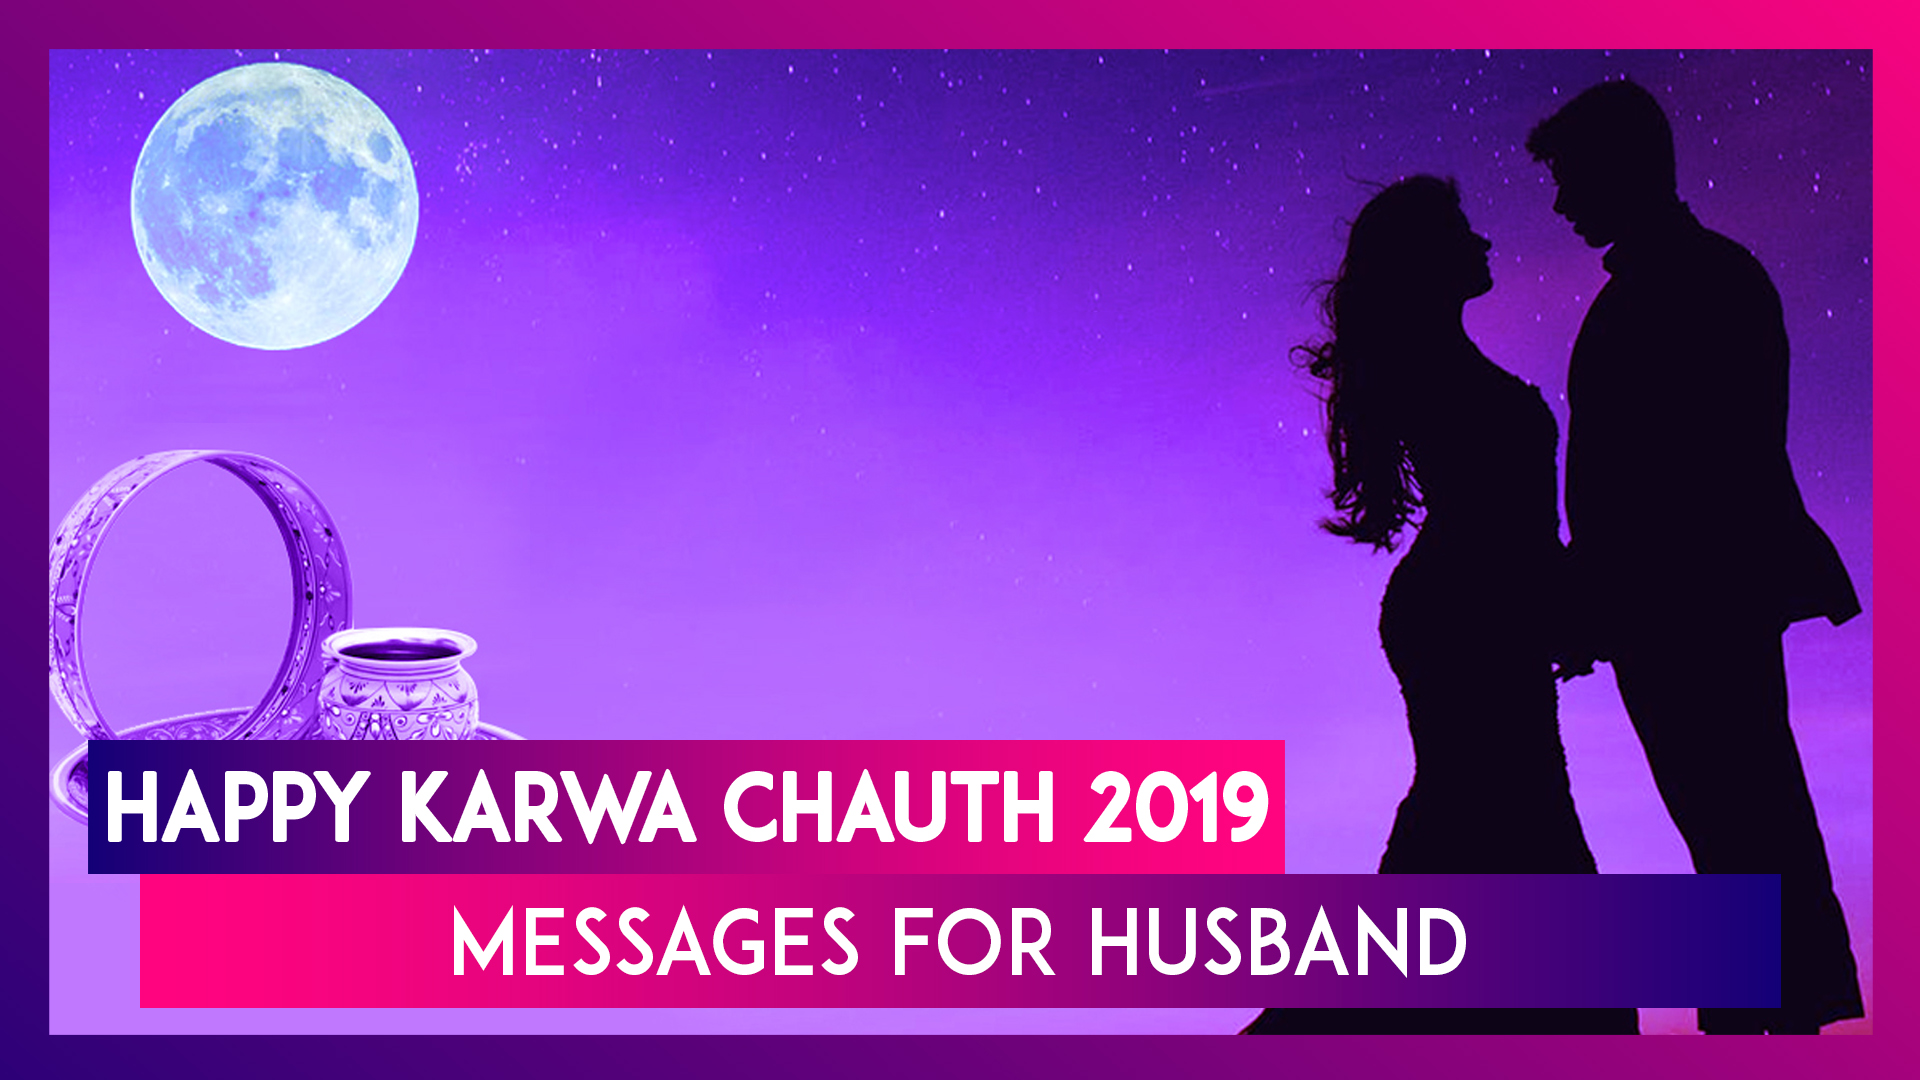 Happy Karwa Chauth 2019 Messages For Husband: Greetings, Quotes, SMS & Image to Send on Karva Chauth